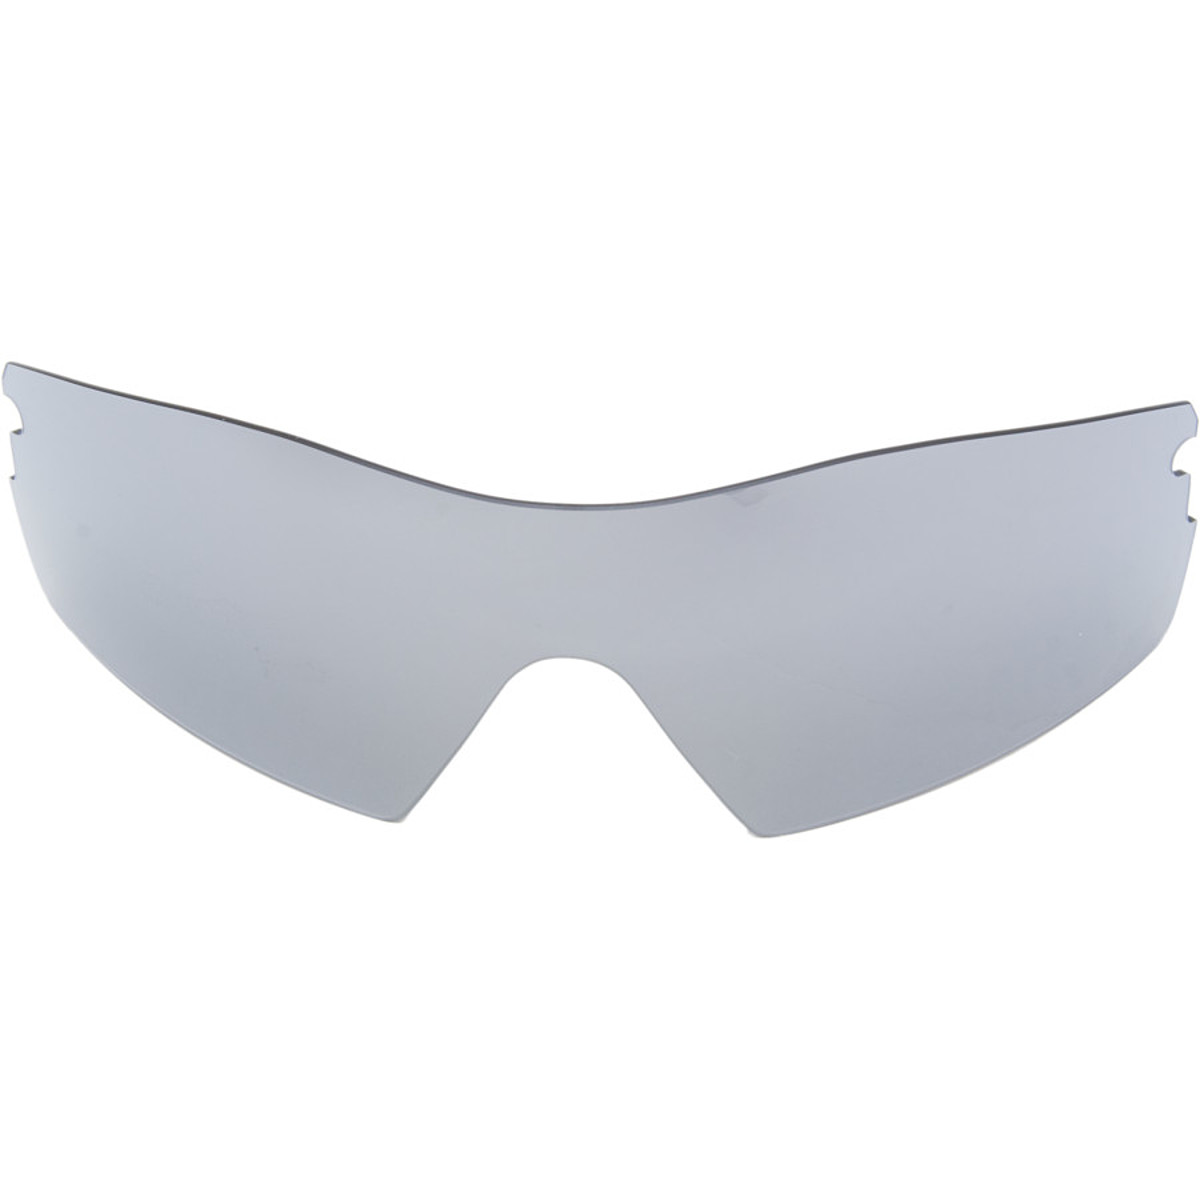 photo: Oakley Radar XL Blades Replacement Lens sunglass accessory